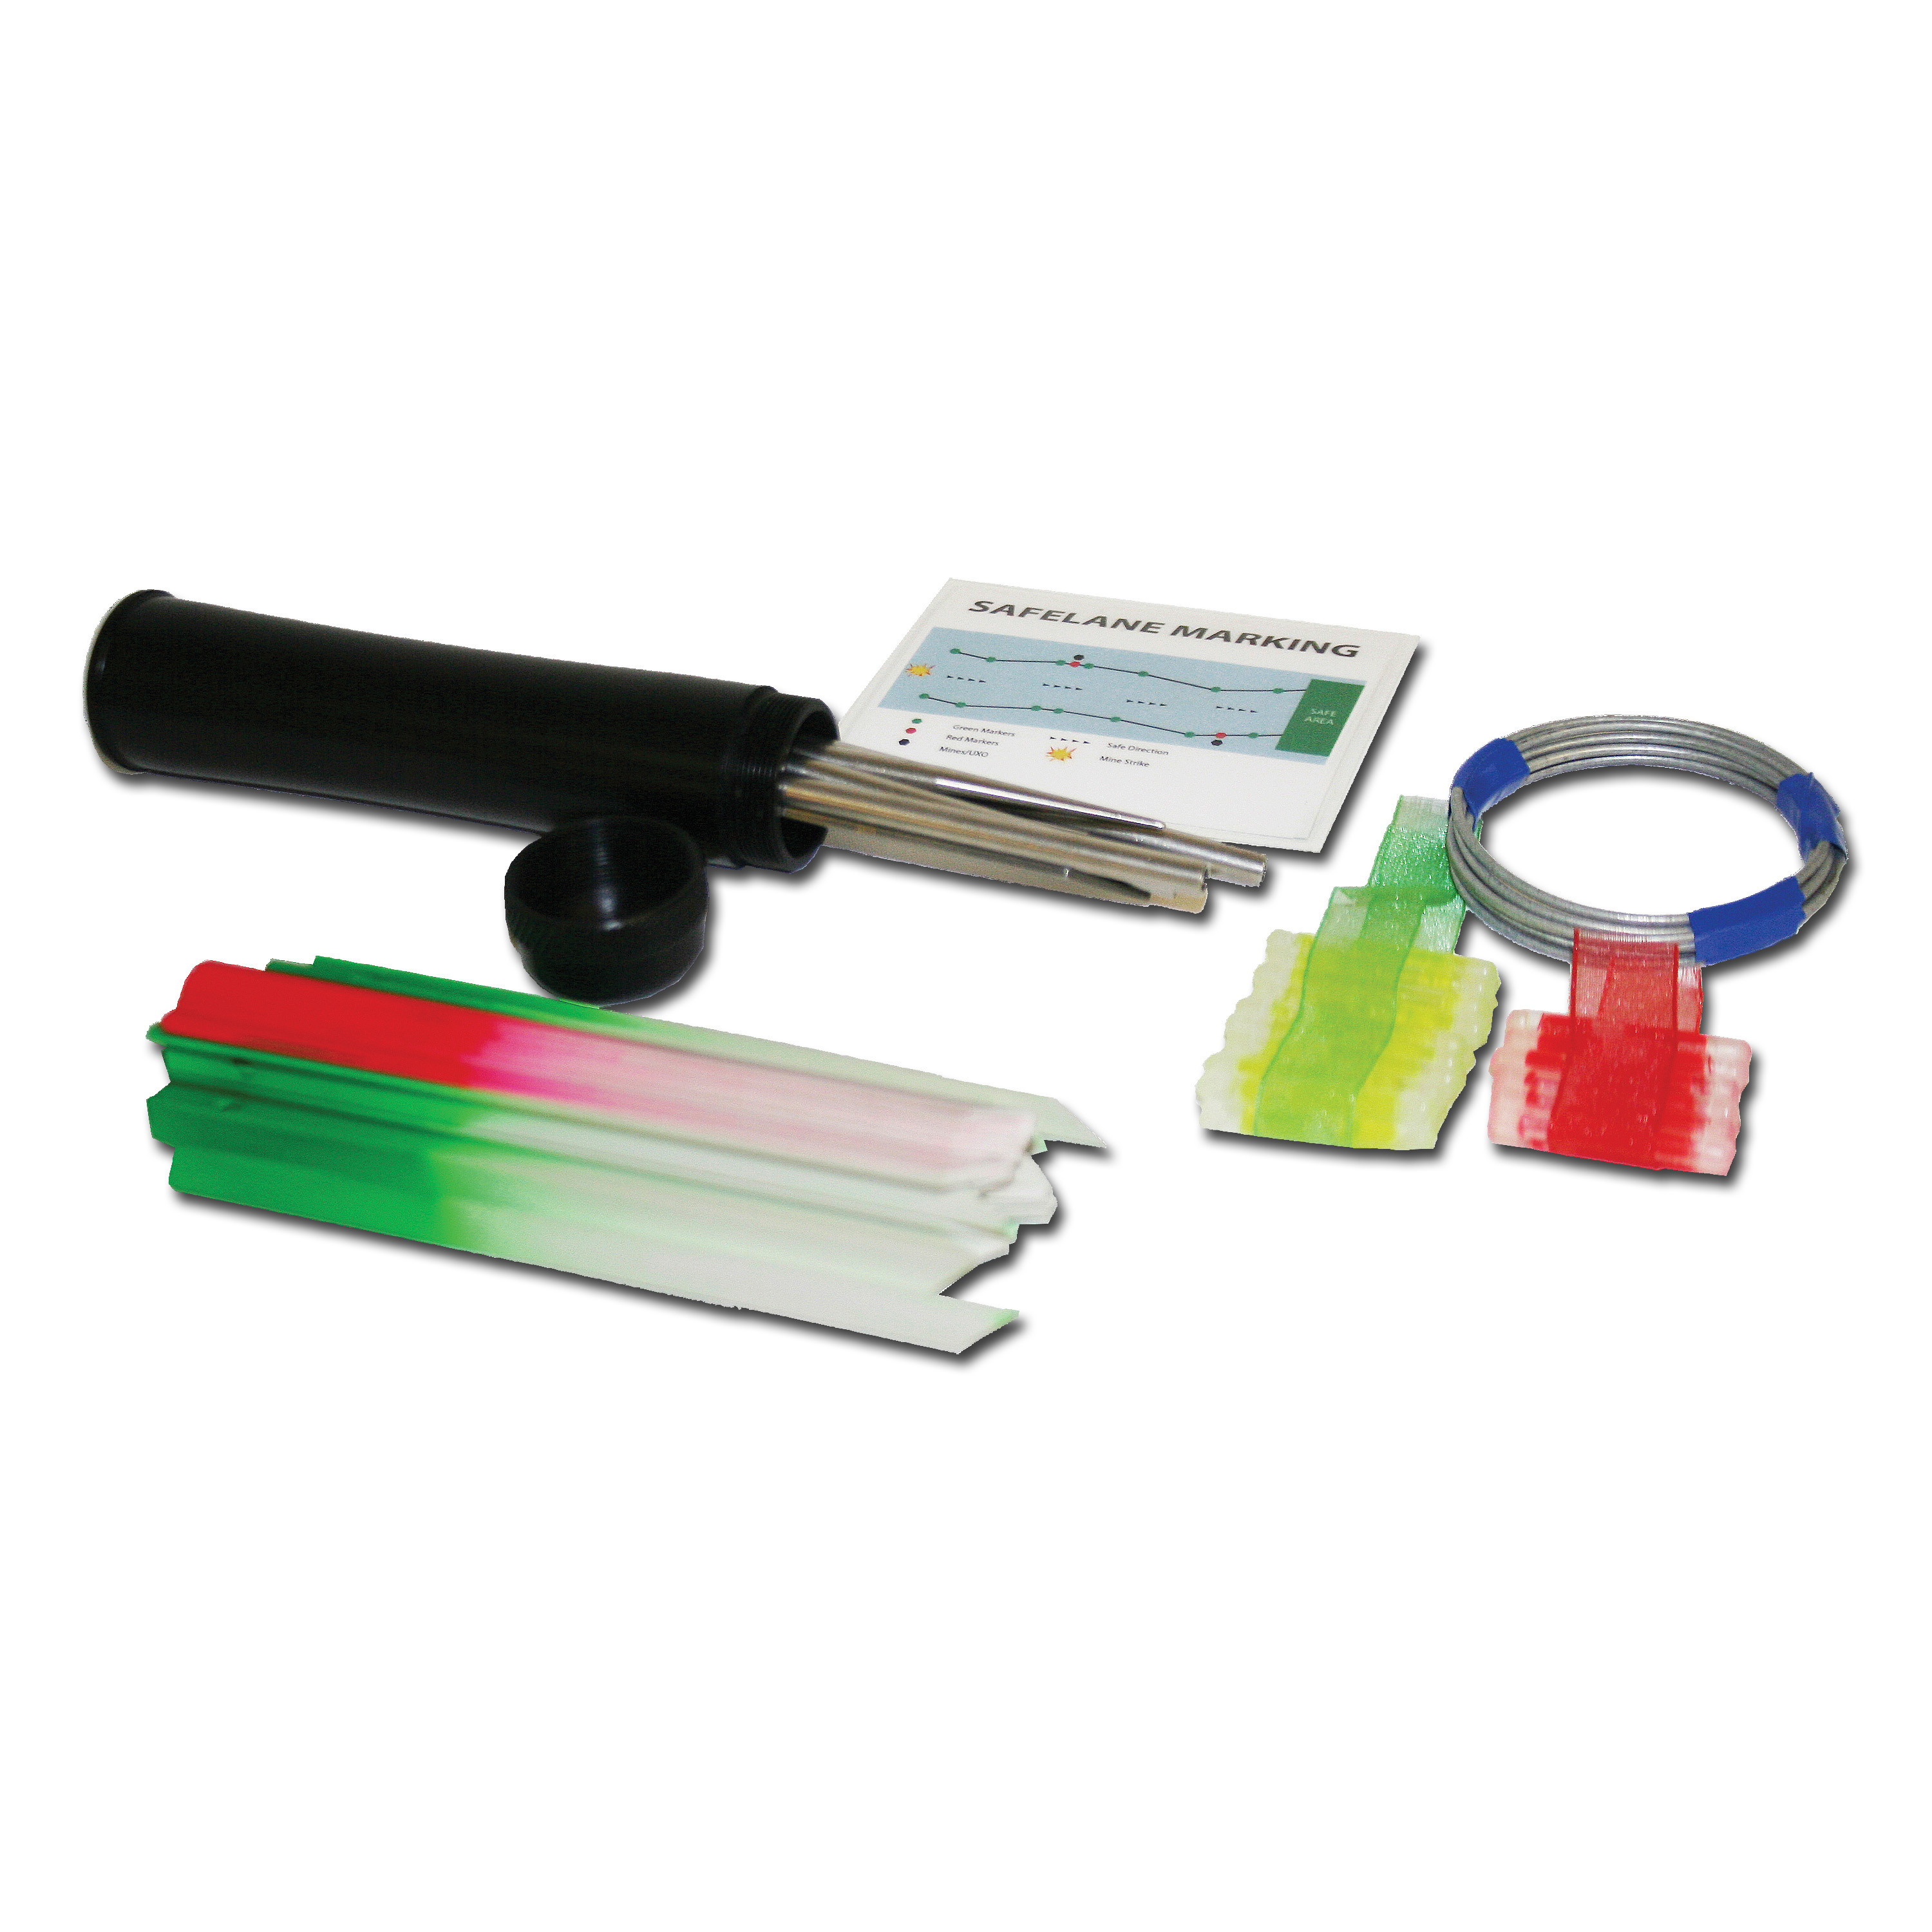 BCB Personal-Mine Extraction Kit